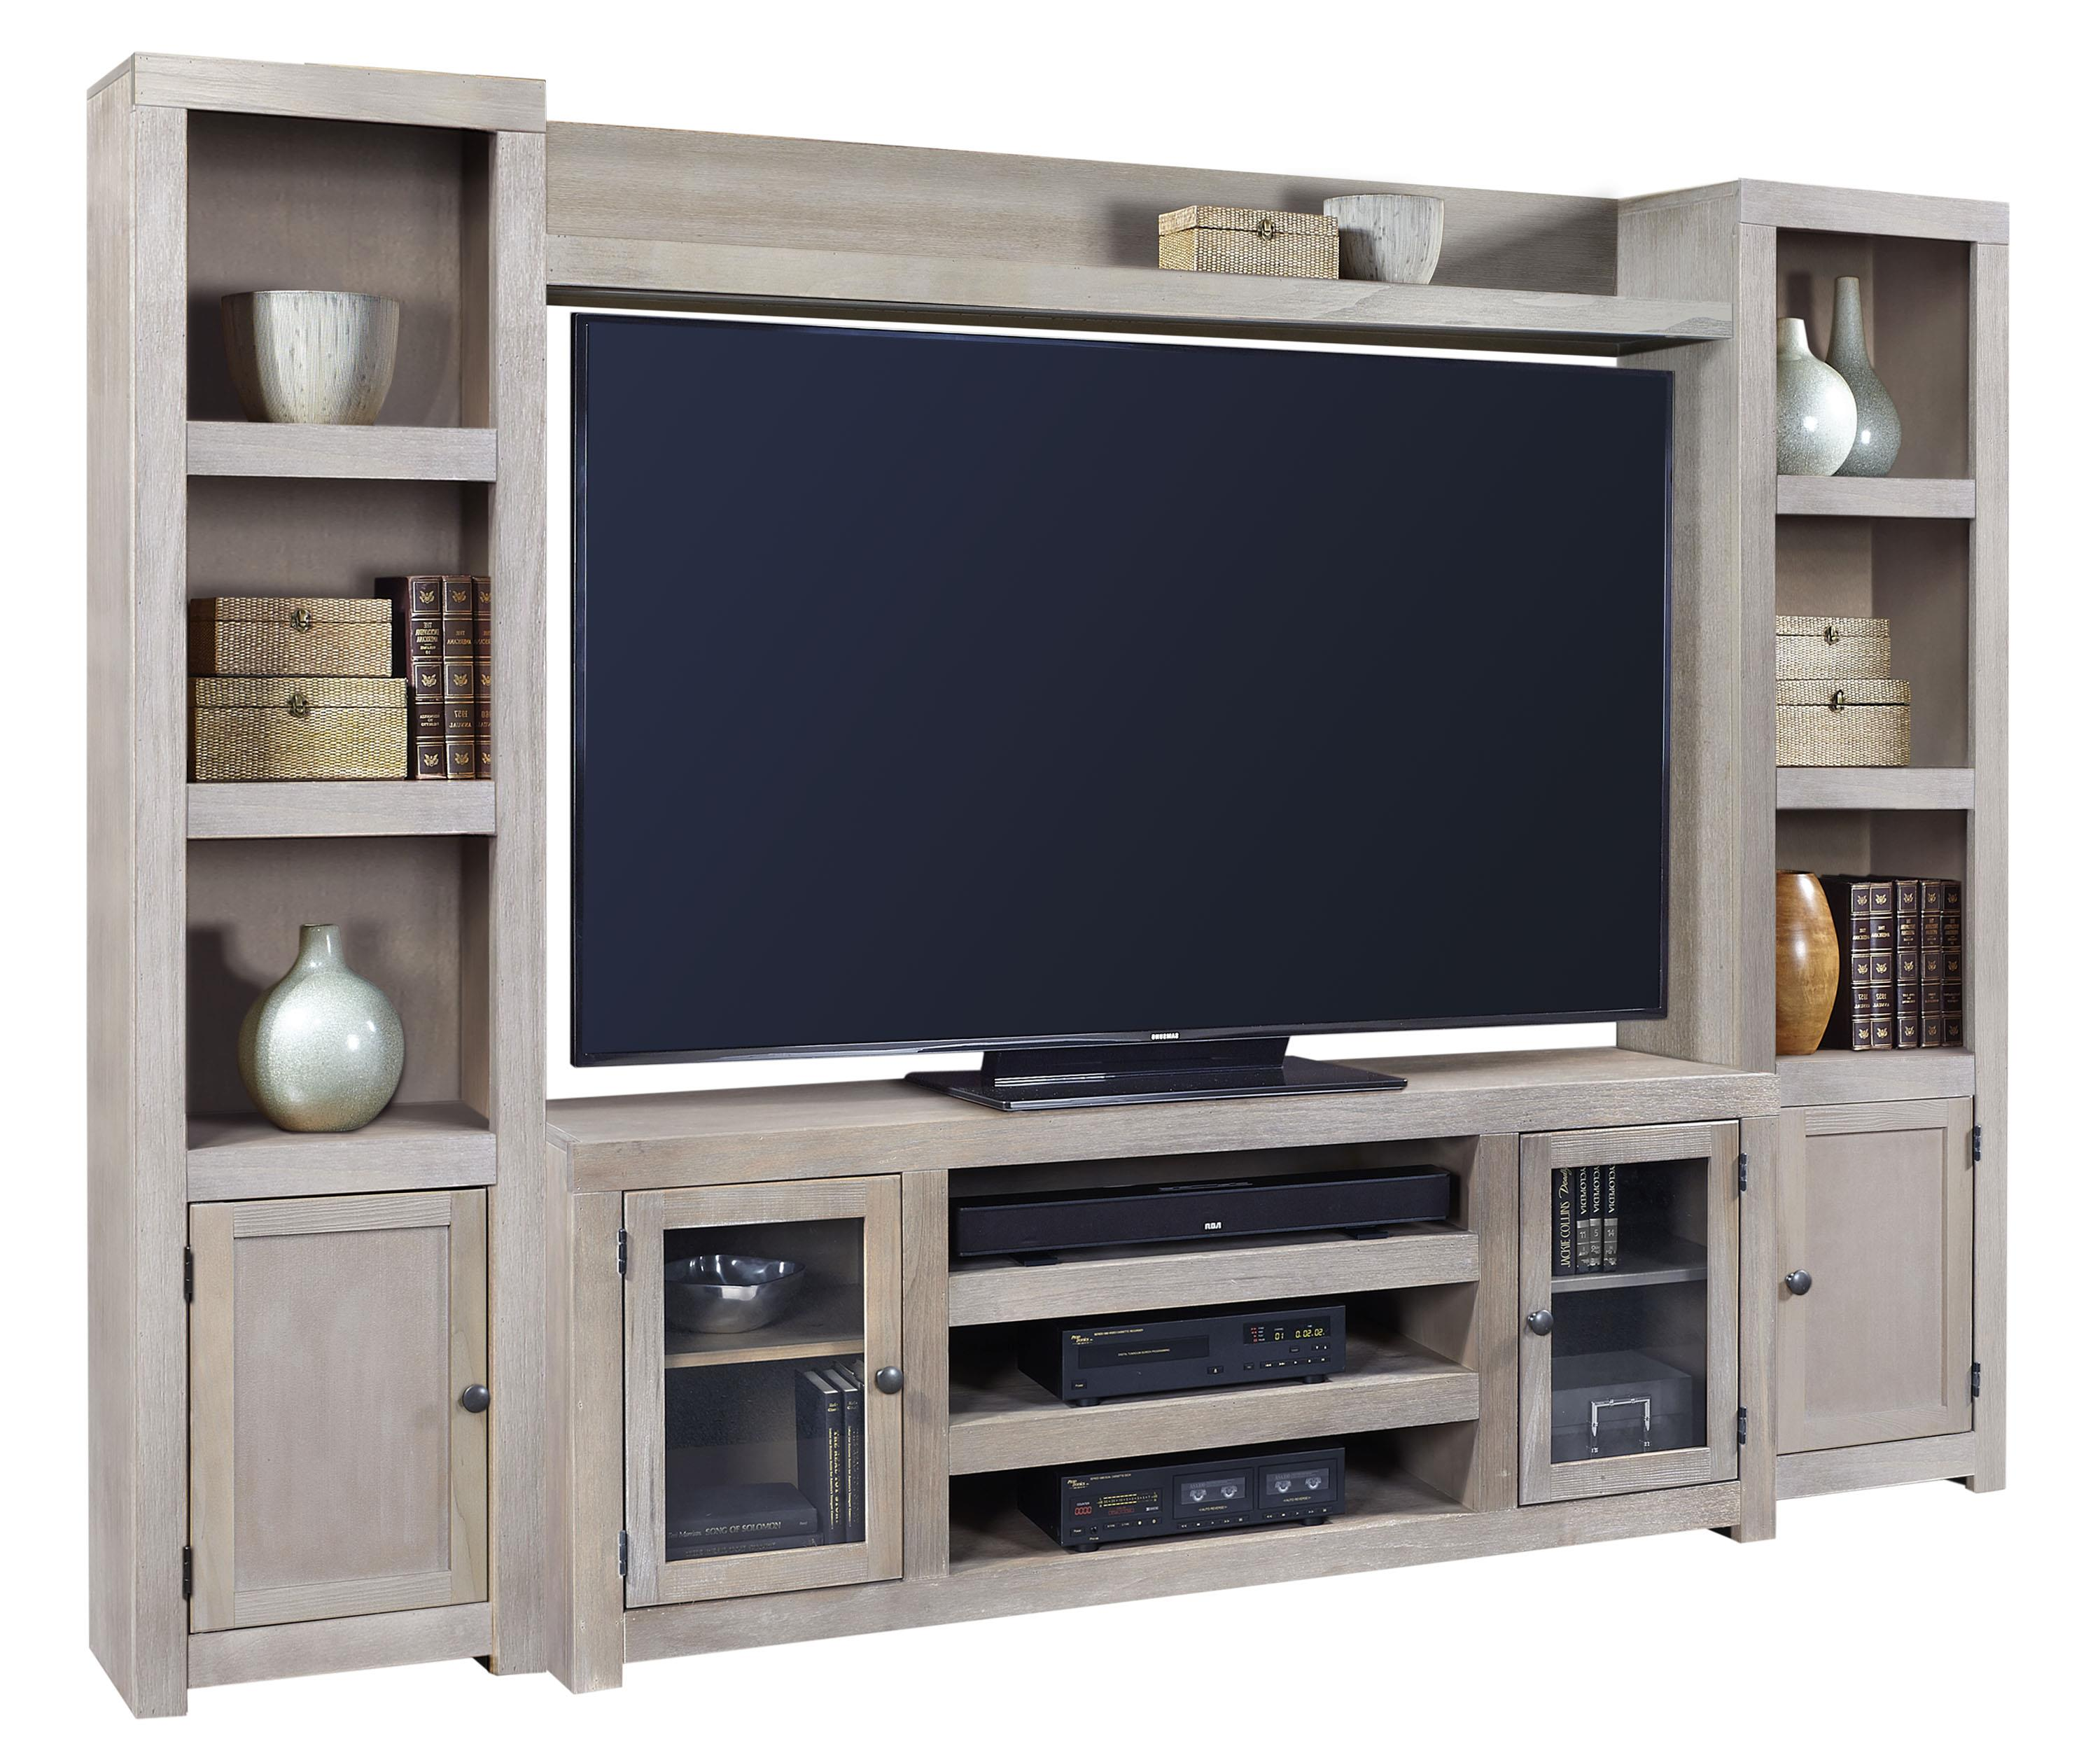 Aspenhome Contemporary Driftwood Entertainment Wall - Item Number: WML1073+173+118L+118R-DRF